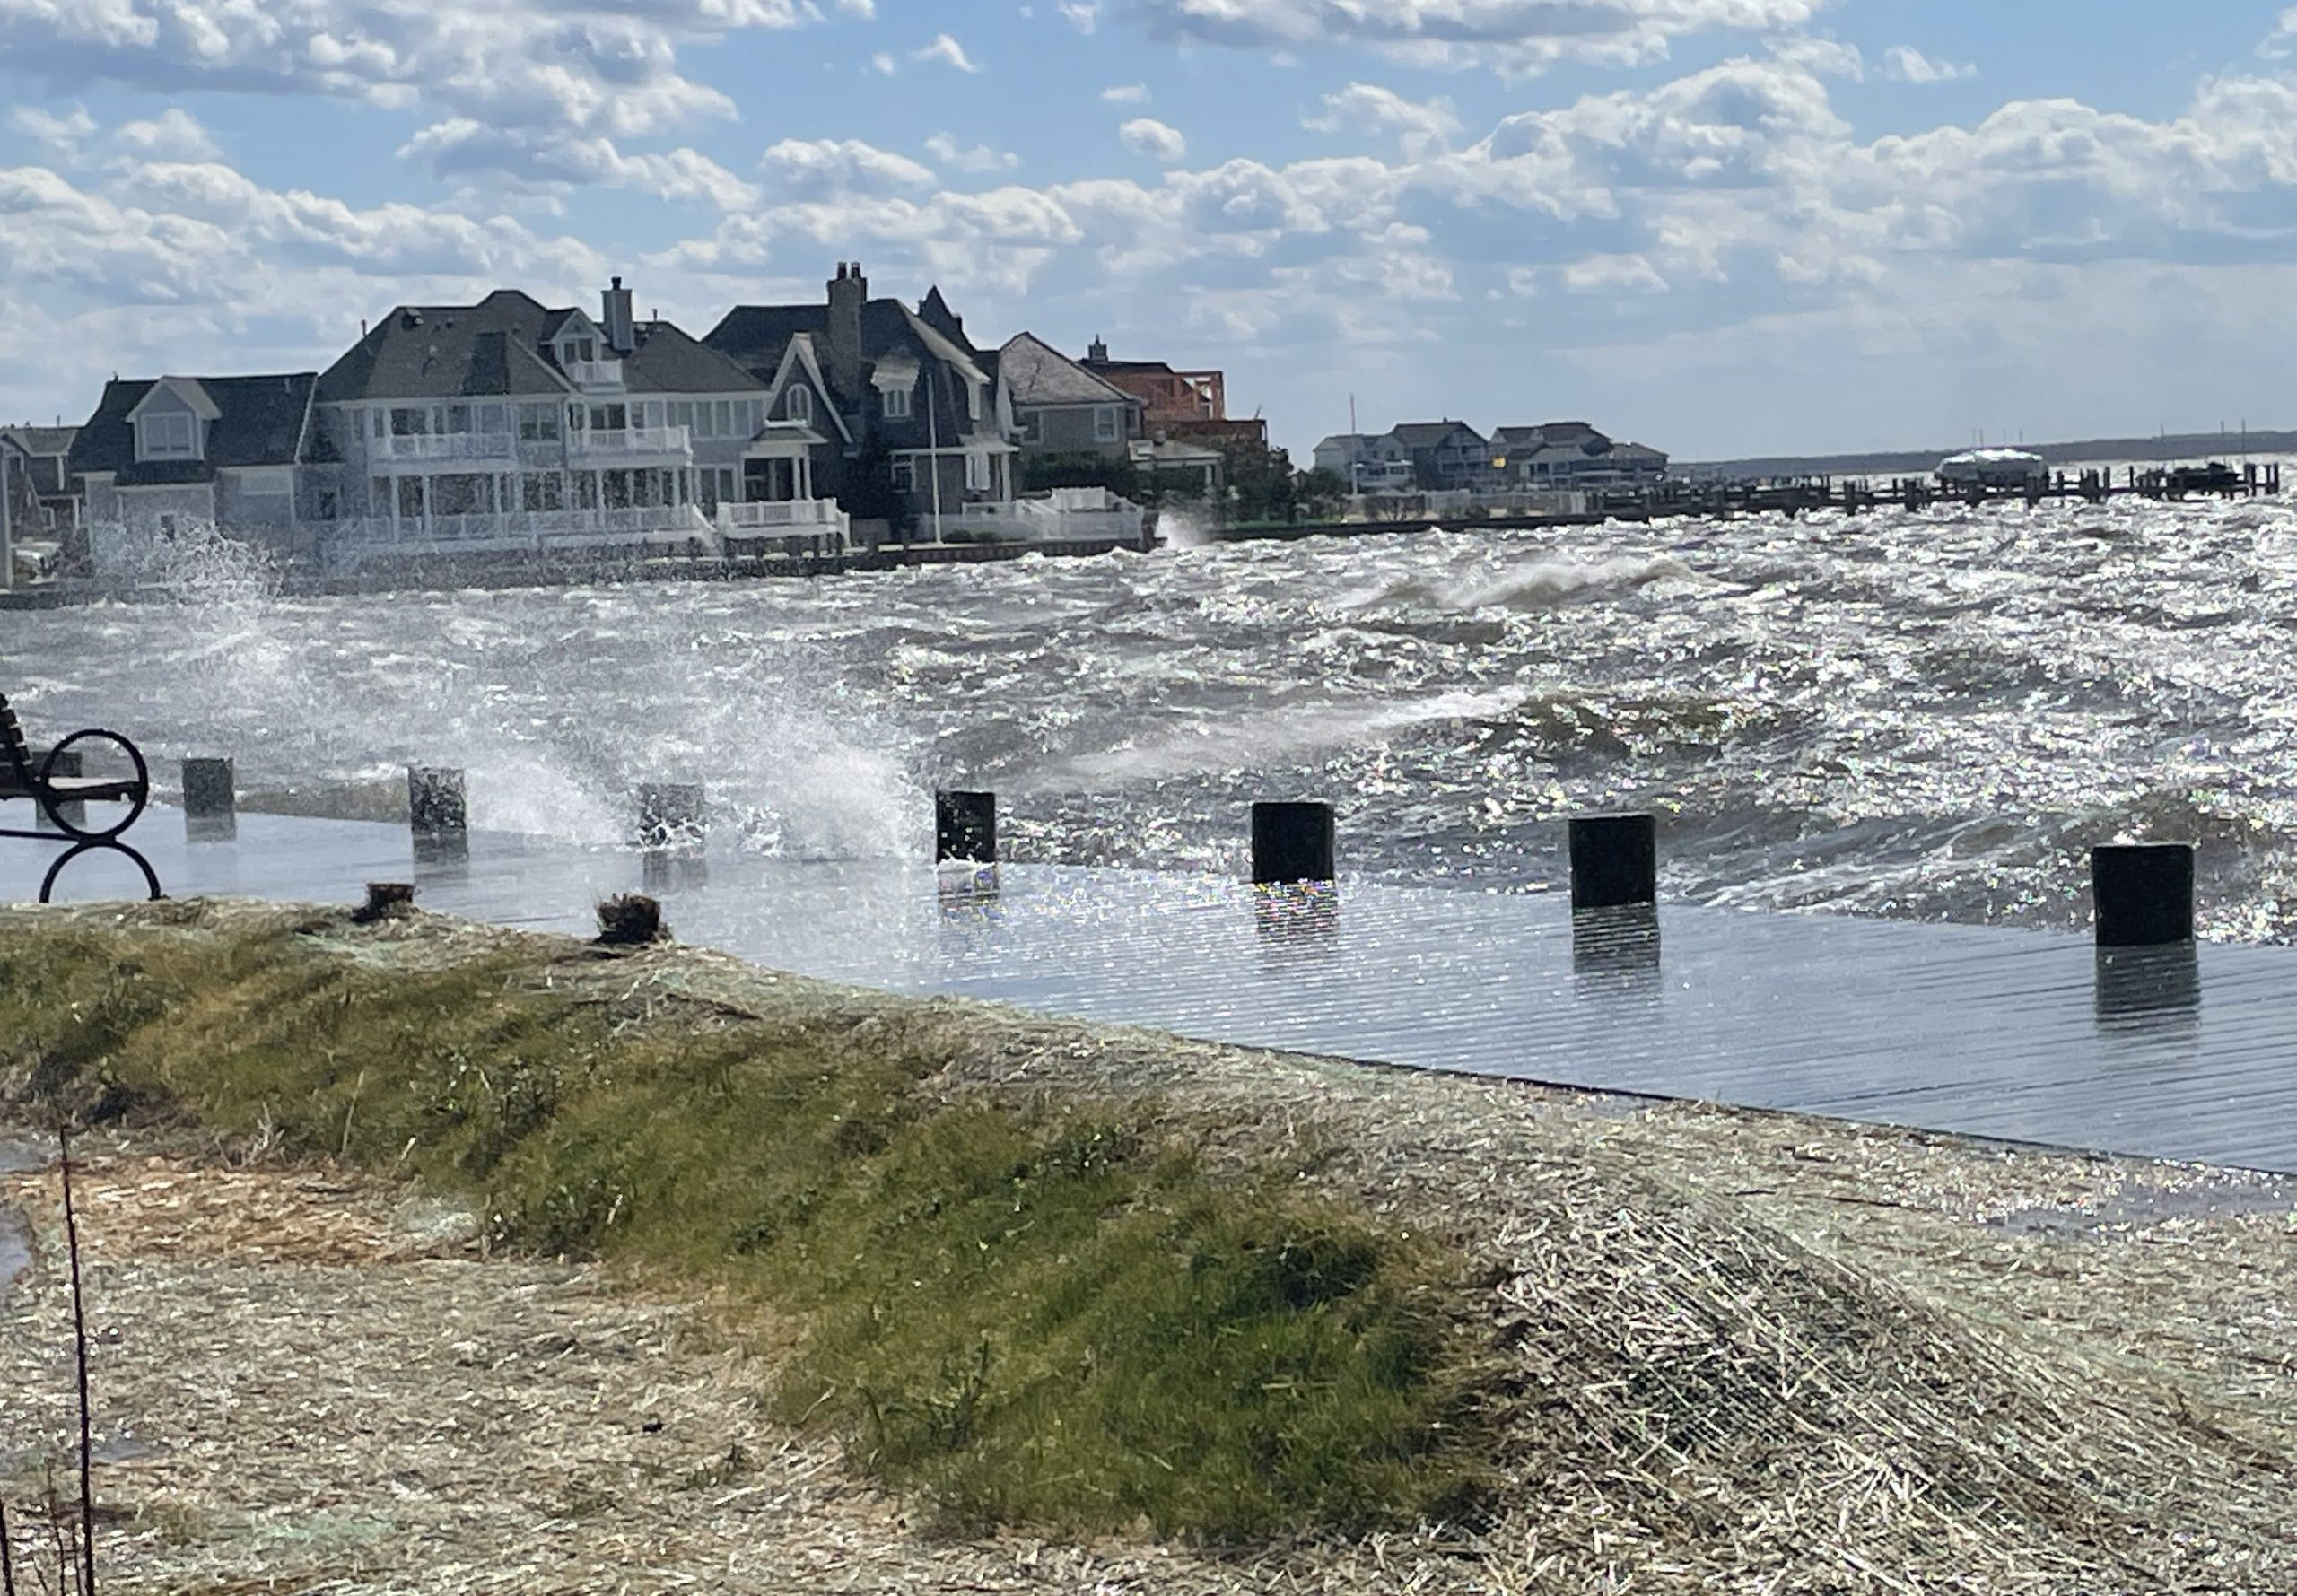 Waves whipped up by high winds, April 20, 2021. (Photo: Daniel Nee)